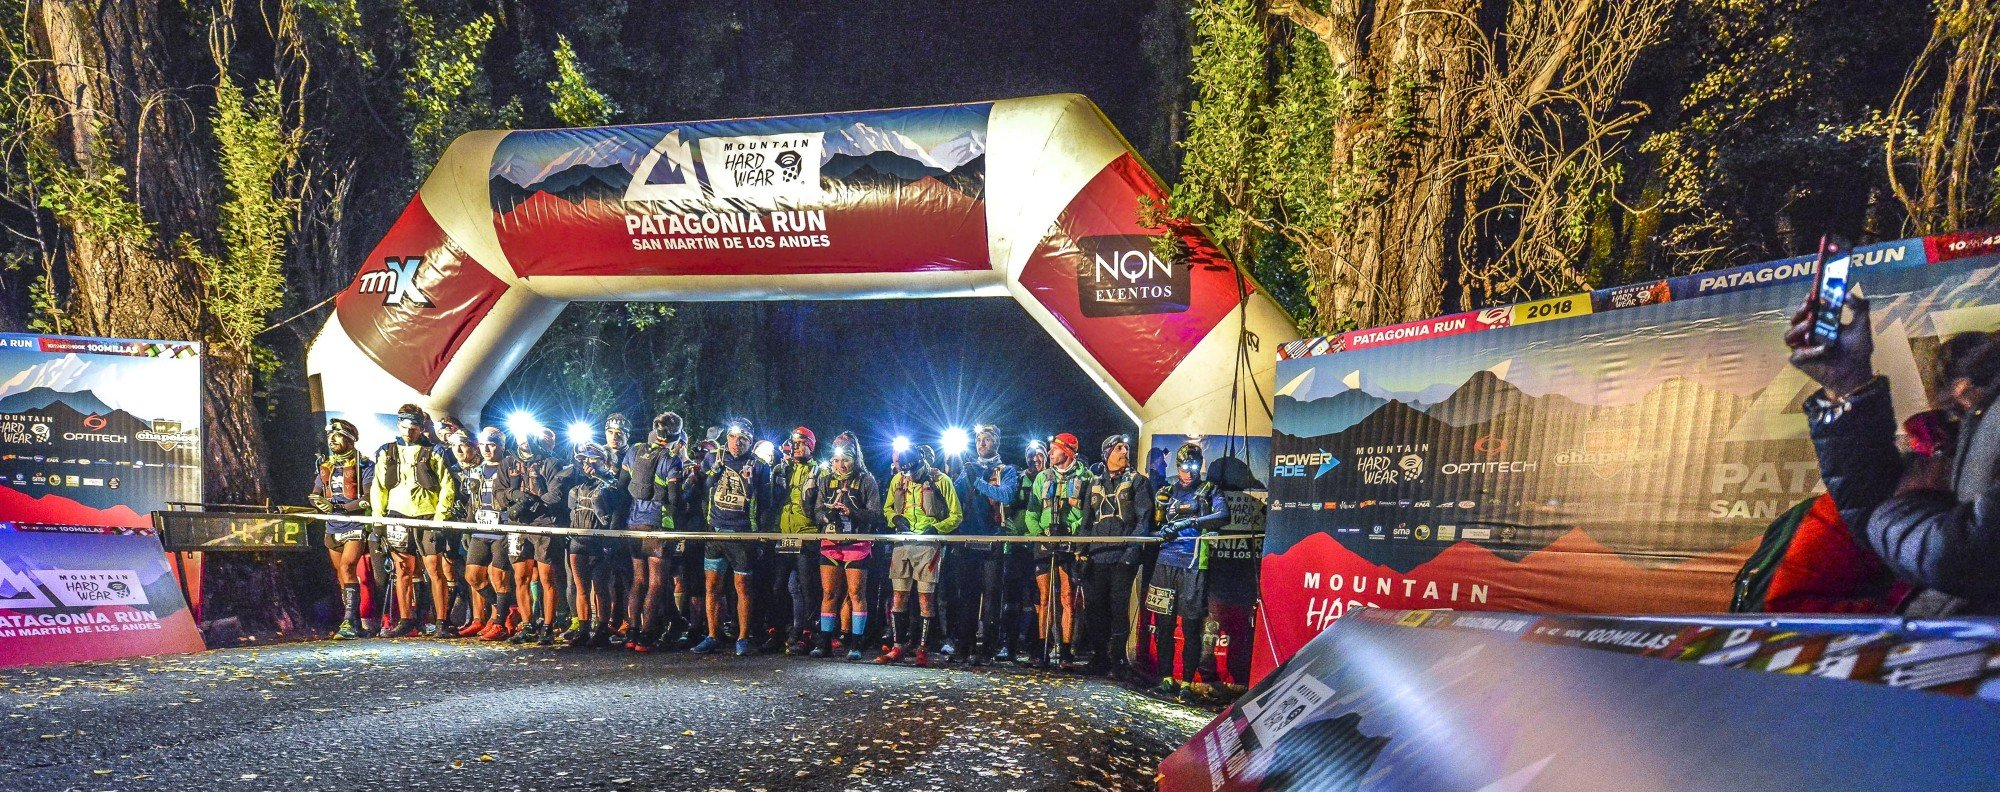 Patagonia Run one of South America's largest trail running events now part of Spartan World Trail Championships. Photo: Patagonia Run